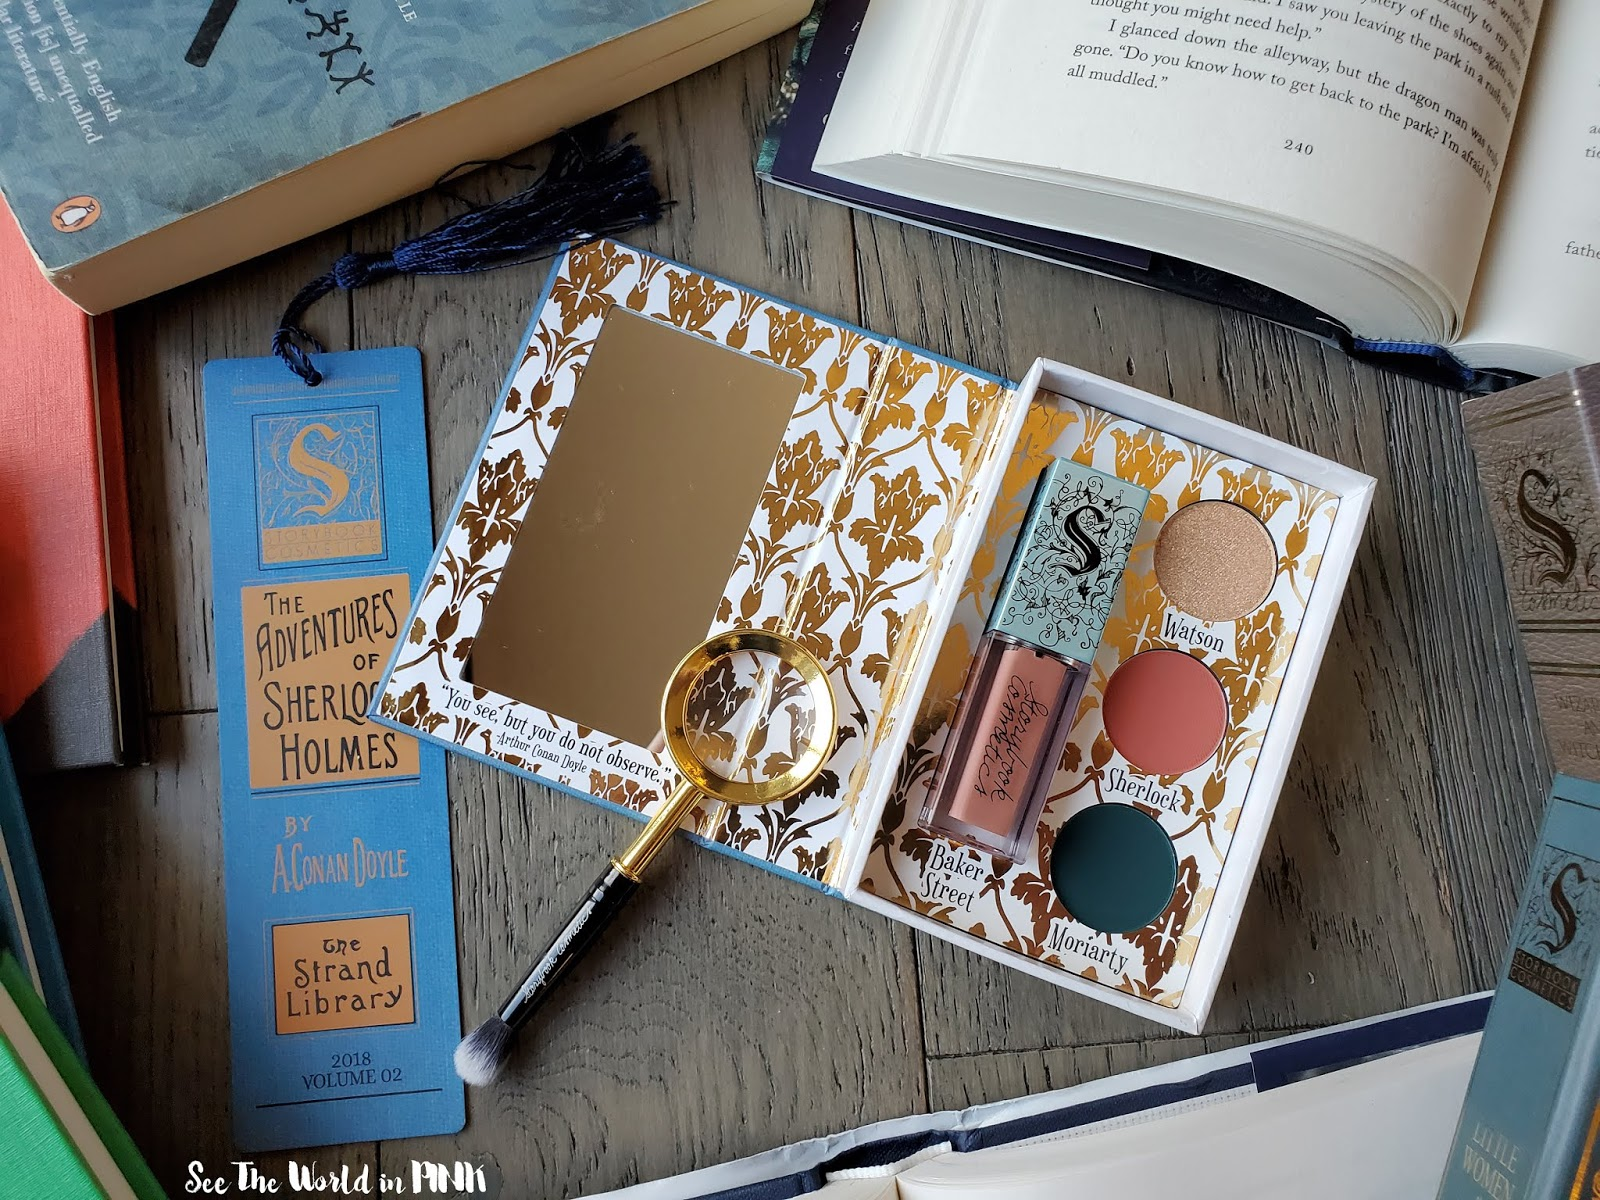 Storybook Cosmetics Book Club Subscription Box - October 2019 Volume 2 Sherlock Holmes